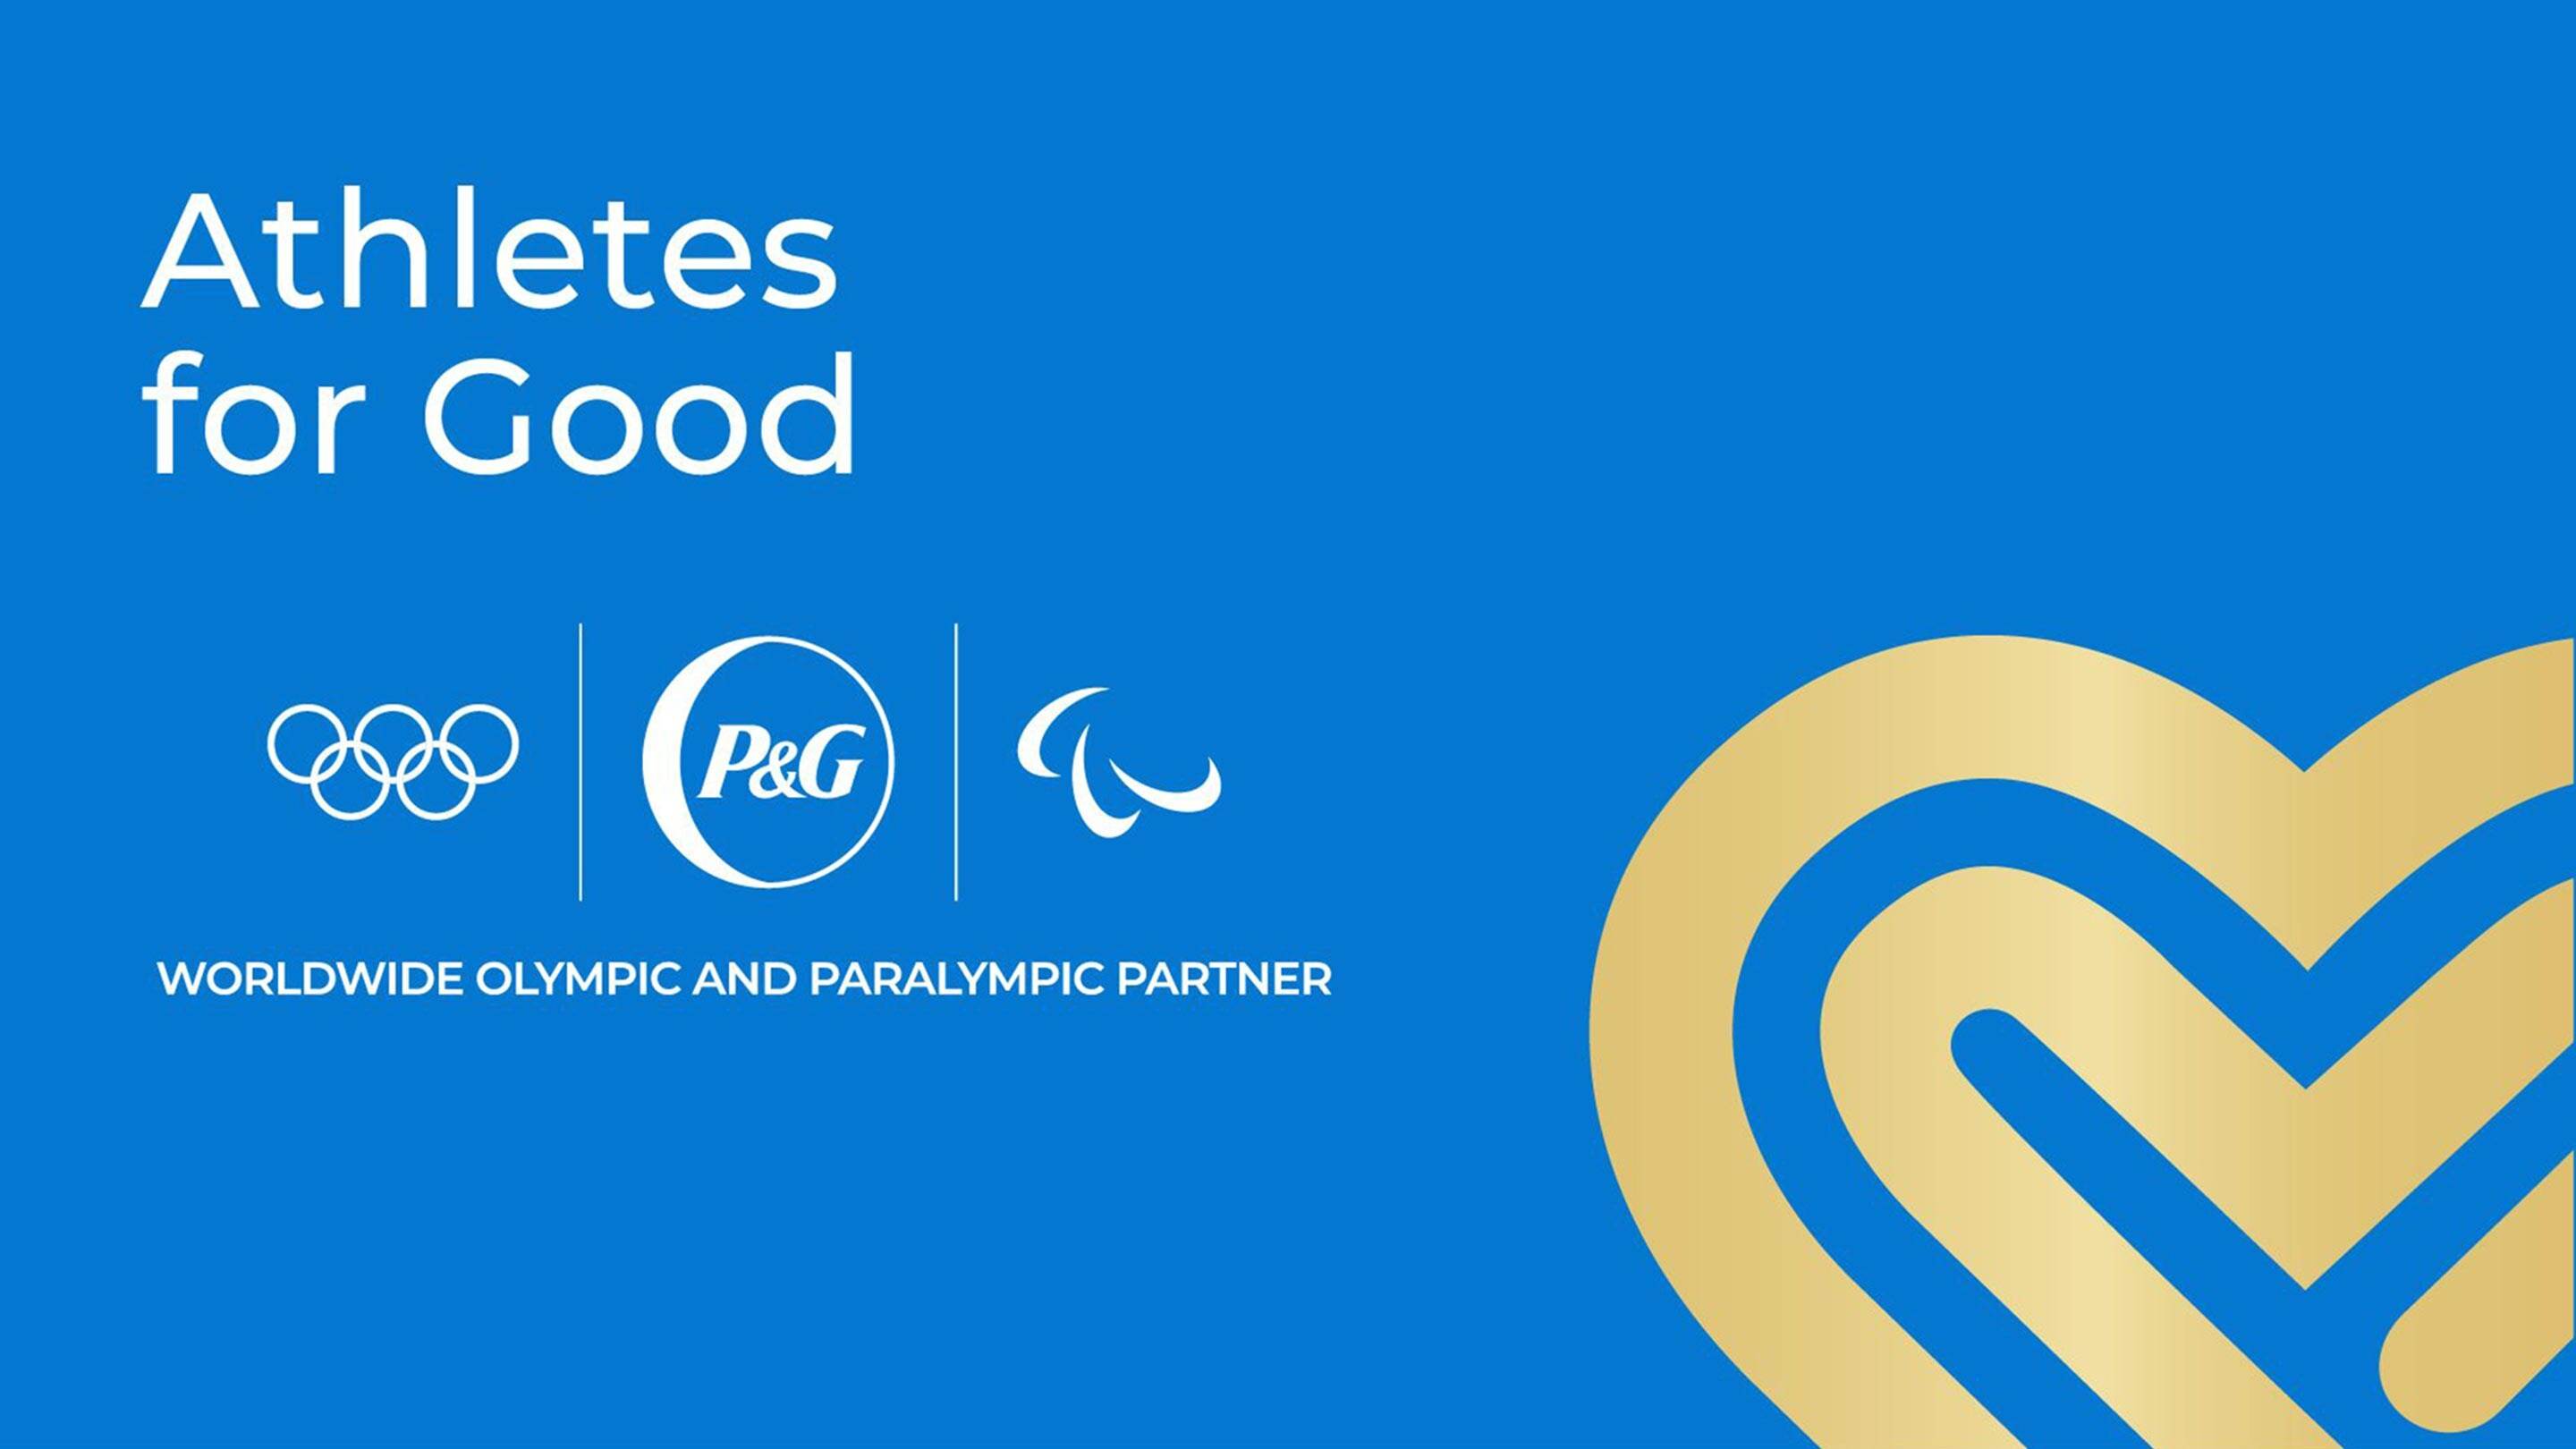 P&G Athletes for Good